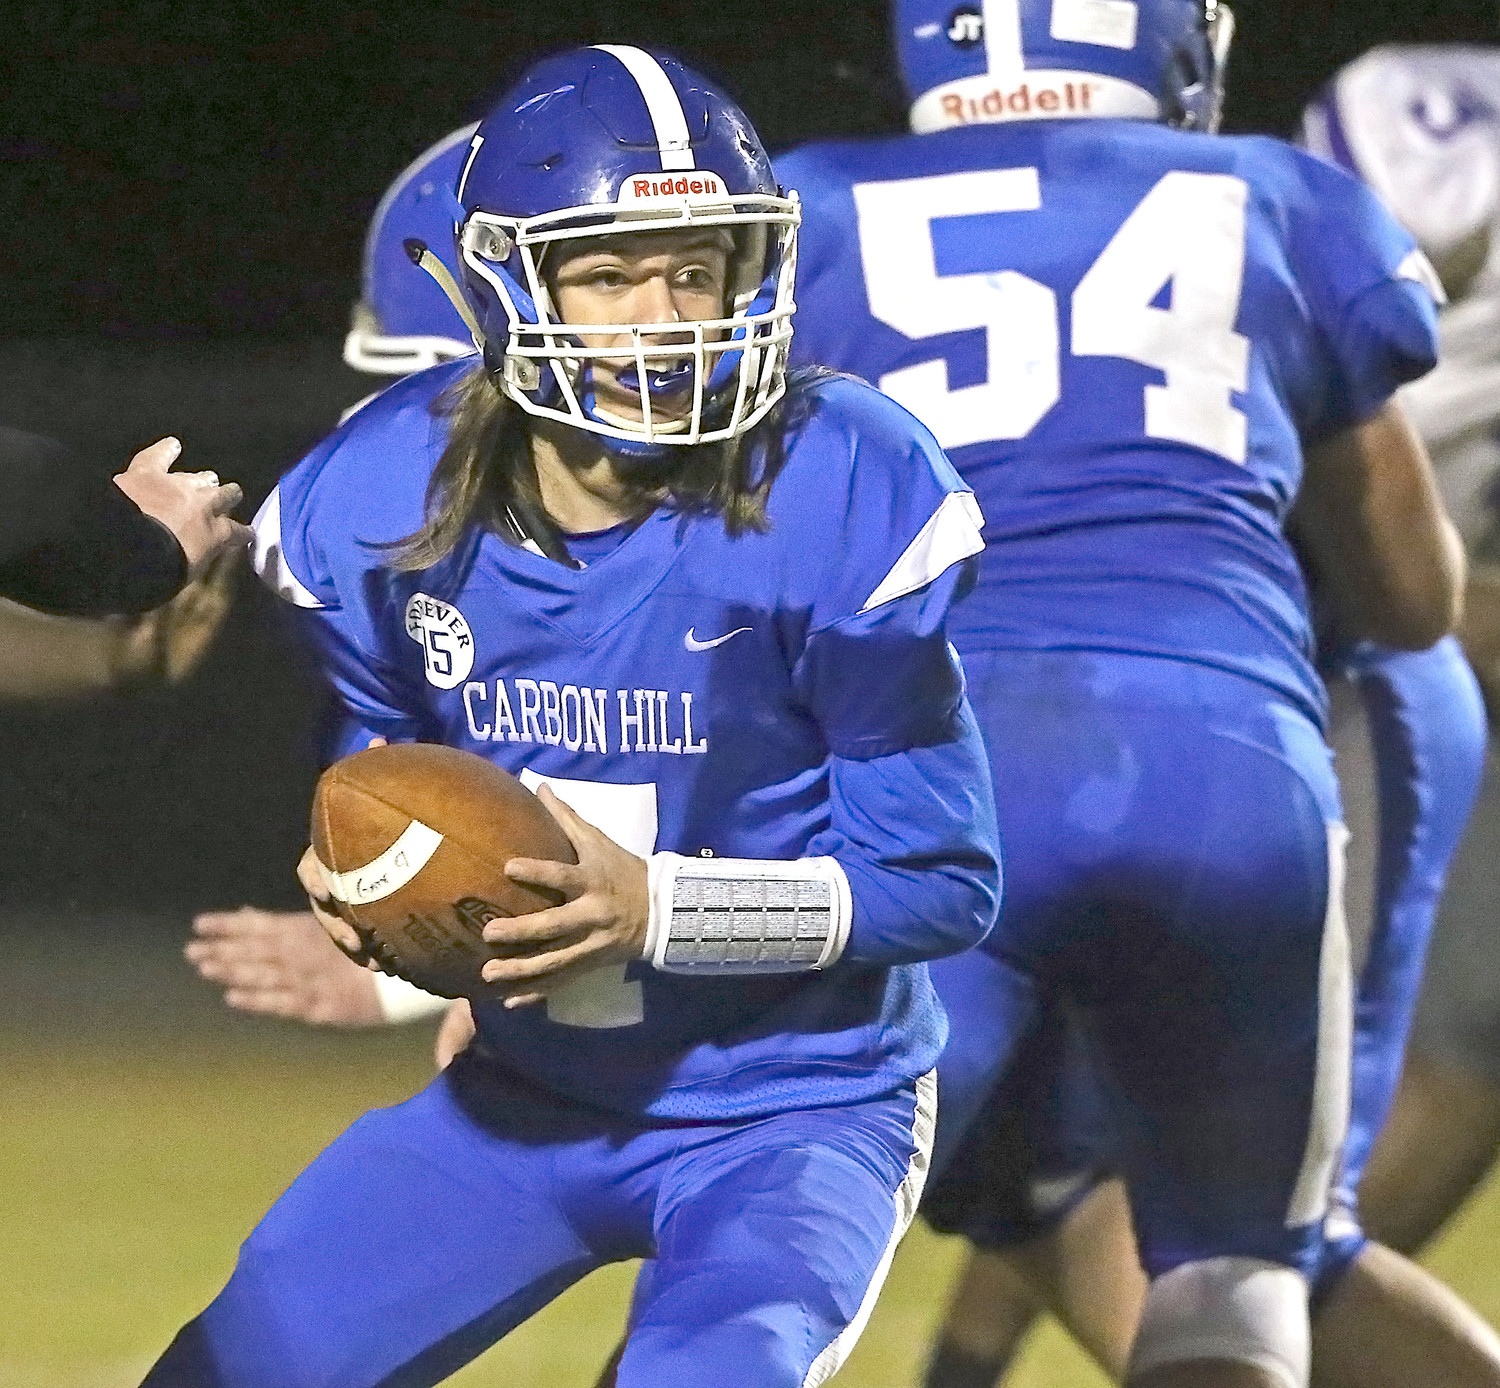 Carbon Hill quarterback Clay Tittle looks to make a handoff during Thursday's game against Holt.